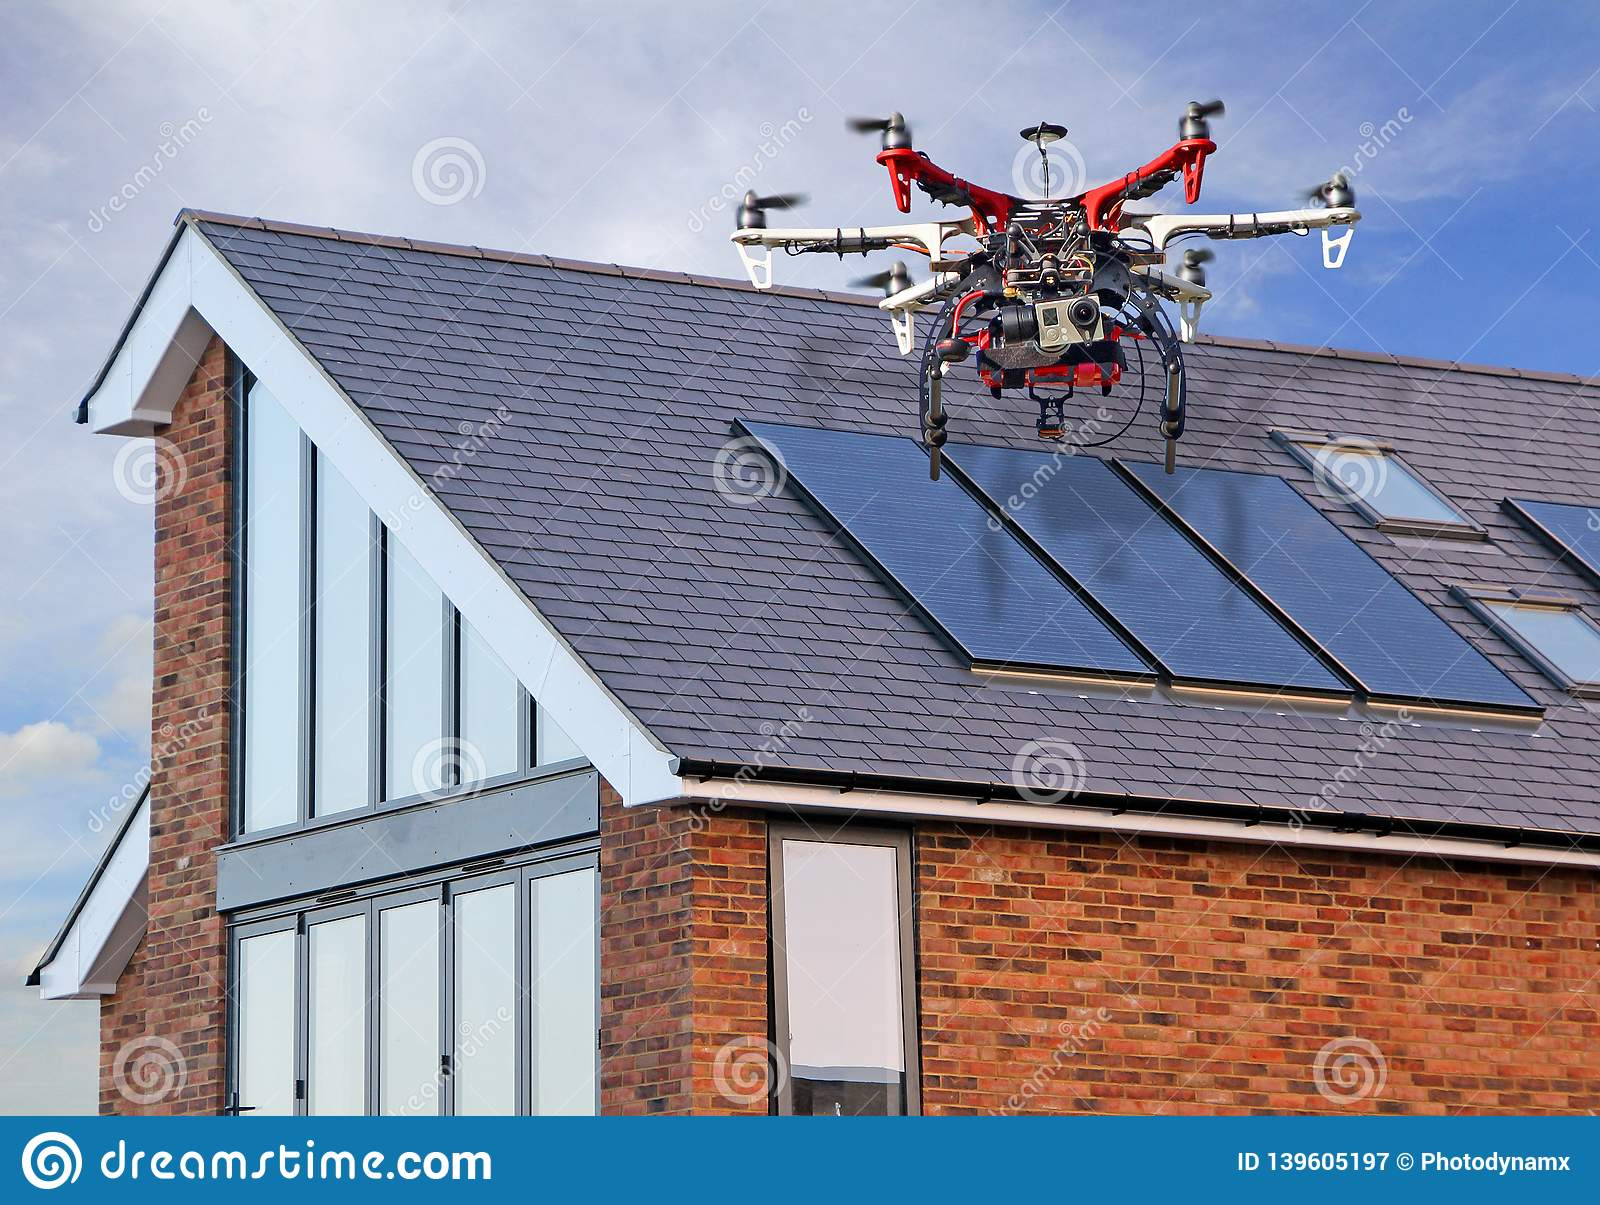 Unmanned aerial vehicle drone surveying home roof repairs